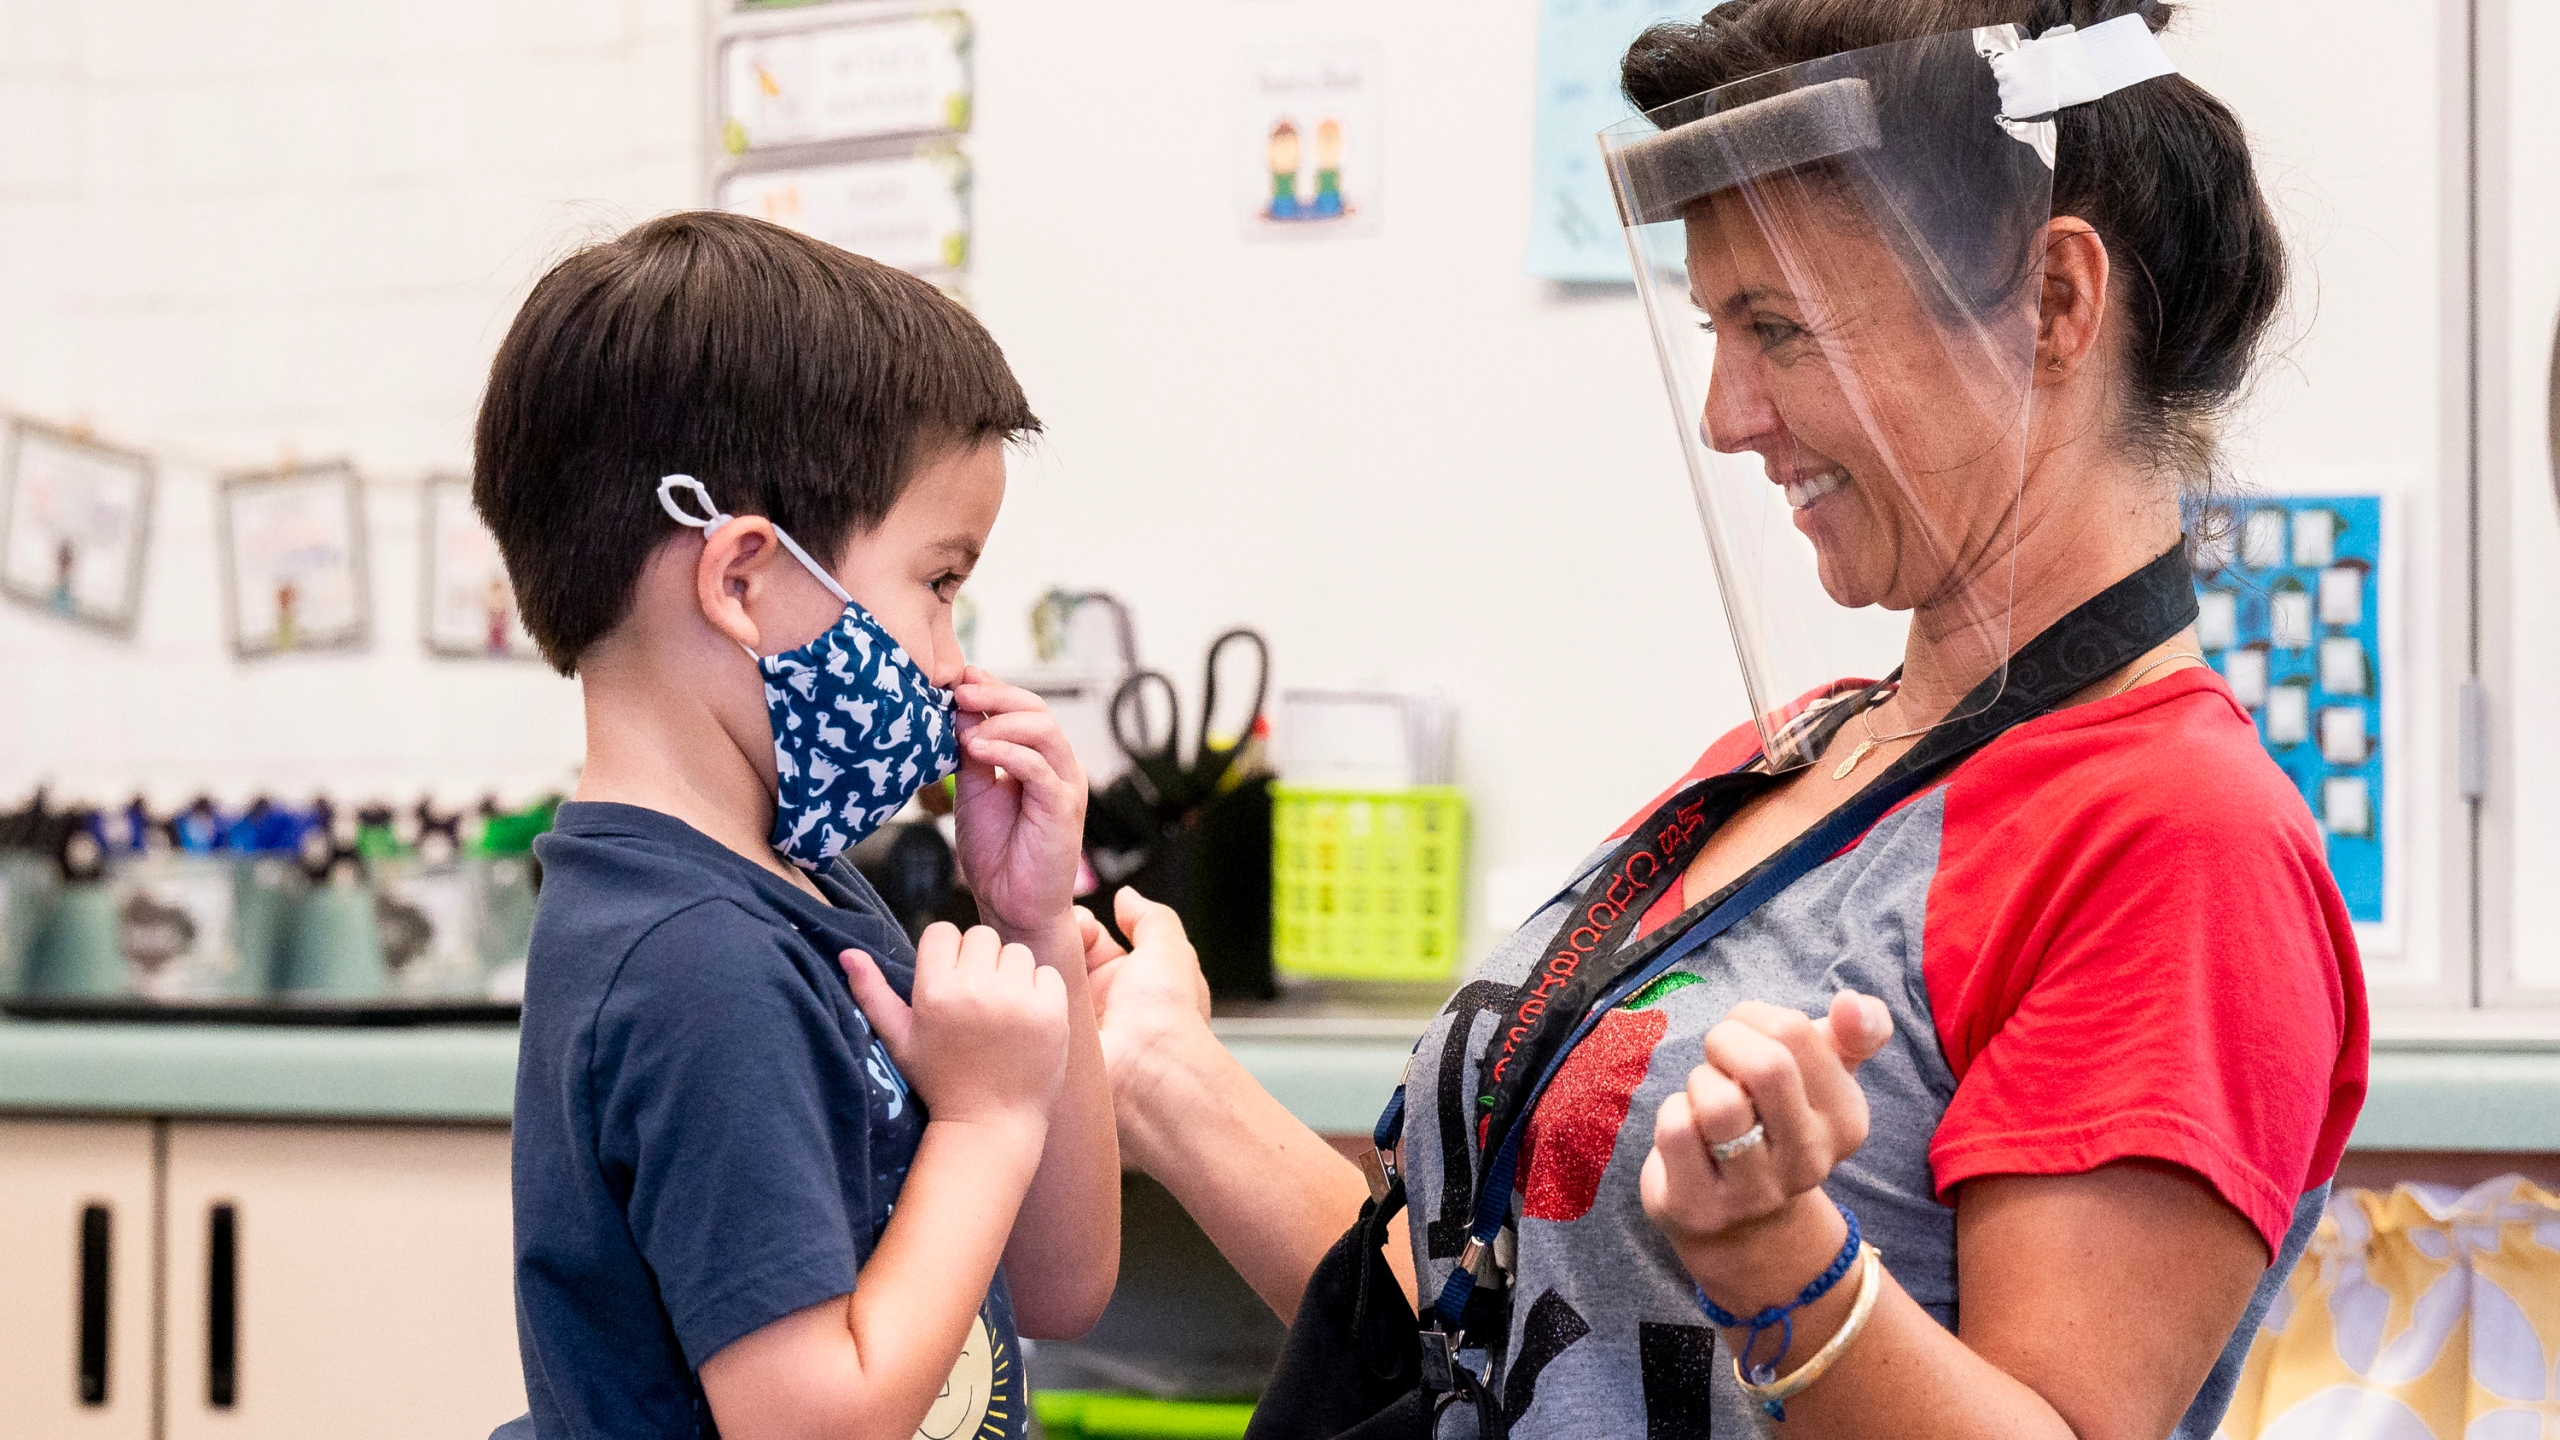 In this Aug. 12, 2021, file photo, a student gets help with his mask from transitional kindergarten teacher Annette Cuccarese during the first day of classes at Tustin Ranch Elementary School in Tustin, Calif. Now that California schools have welcomed students back to in-person learning, they face a new challenge: A shortage of teachers and all other staff, the likes of which some districts say they've never seen. (Paul Bersebach/The Orange County Register via AP, File)